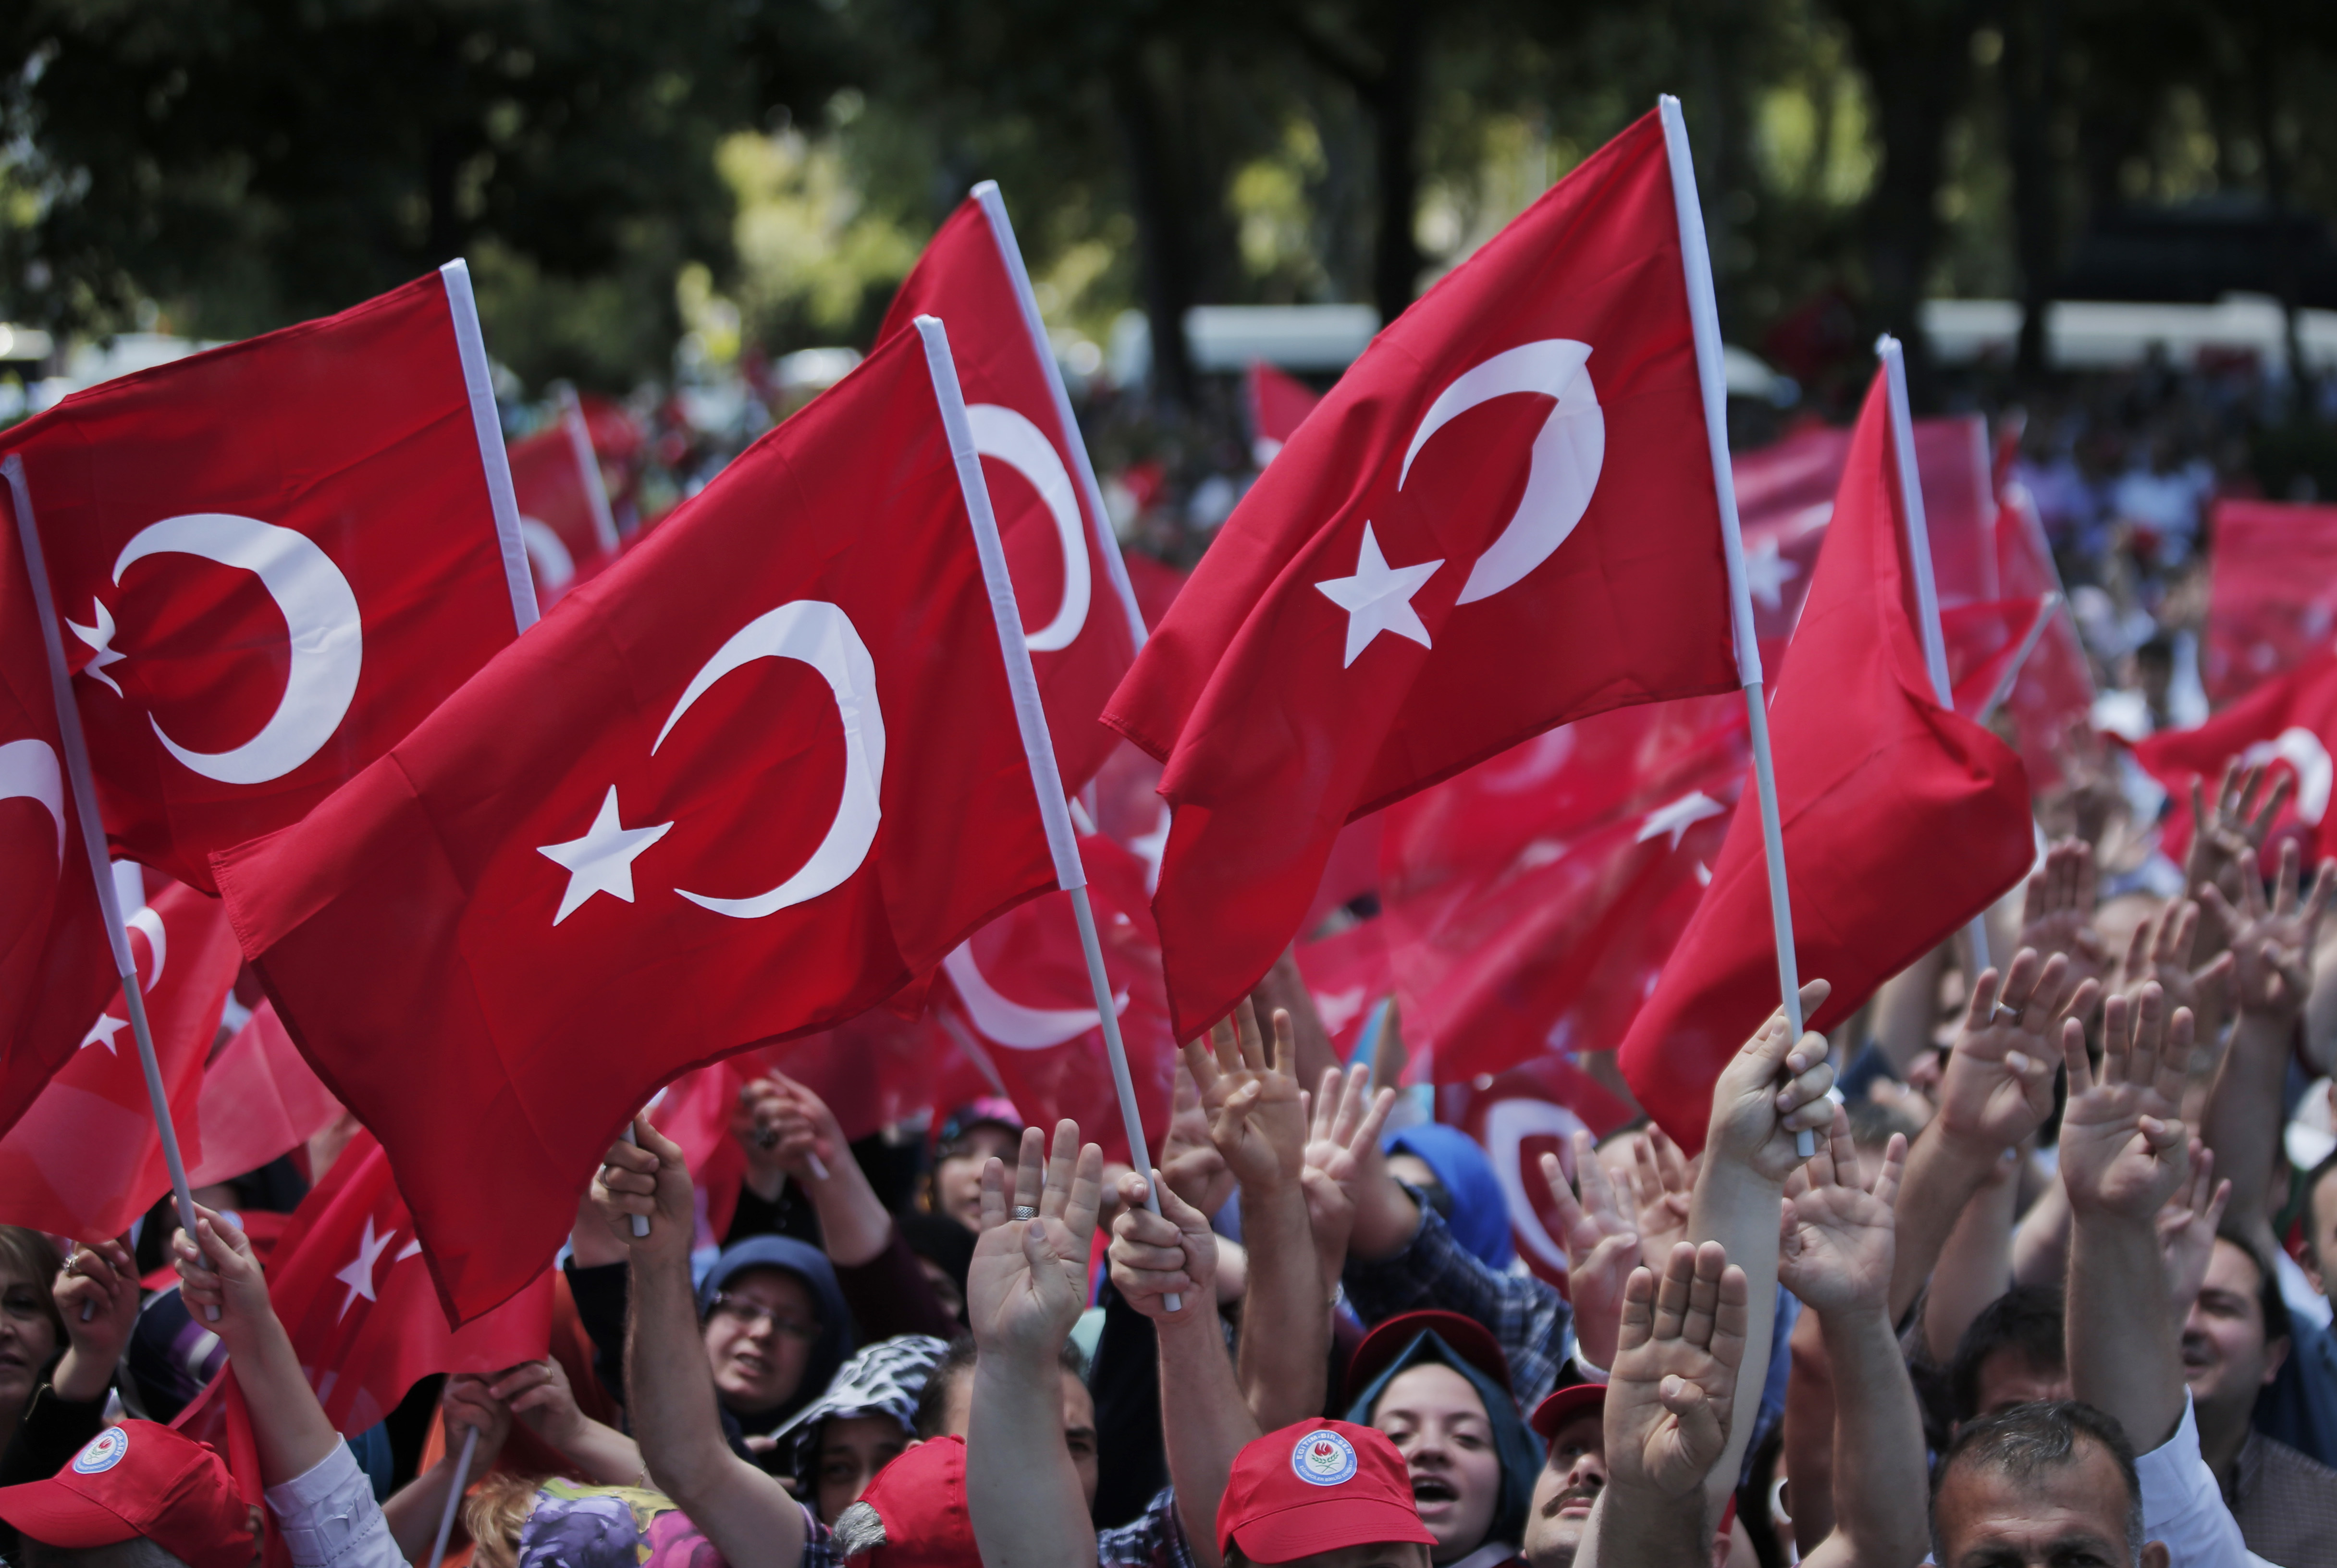 Pro-government demonstrators wave Turkish flags as they protest against the attempted coup in Istanbul, Turkey, July 19, 2016. The Turkish government accelerated its crackdown on alleged plotters of the failed coup against President Recep Tayyip Erdo...